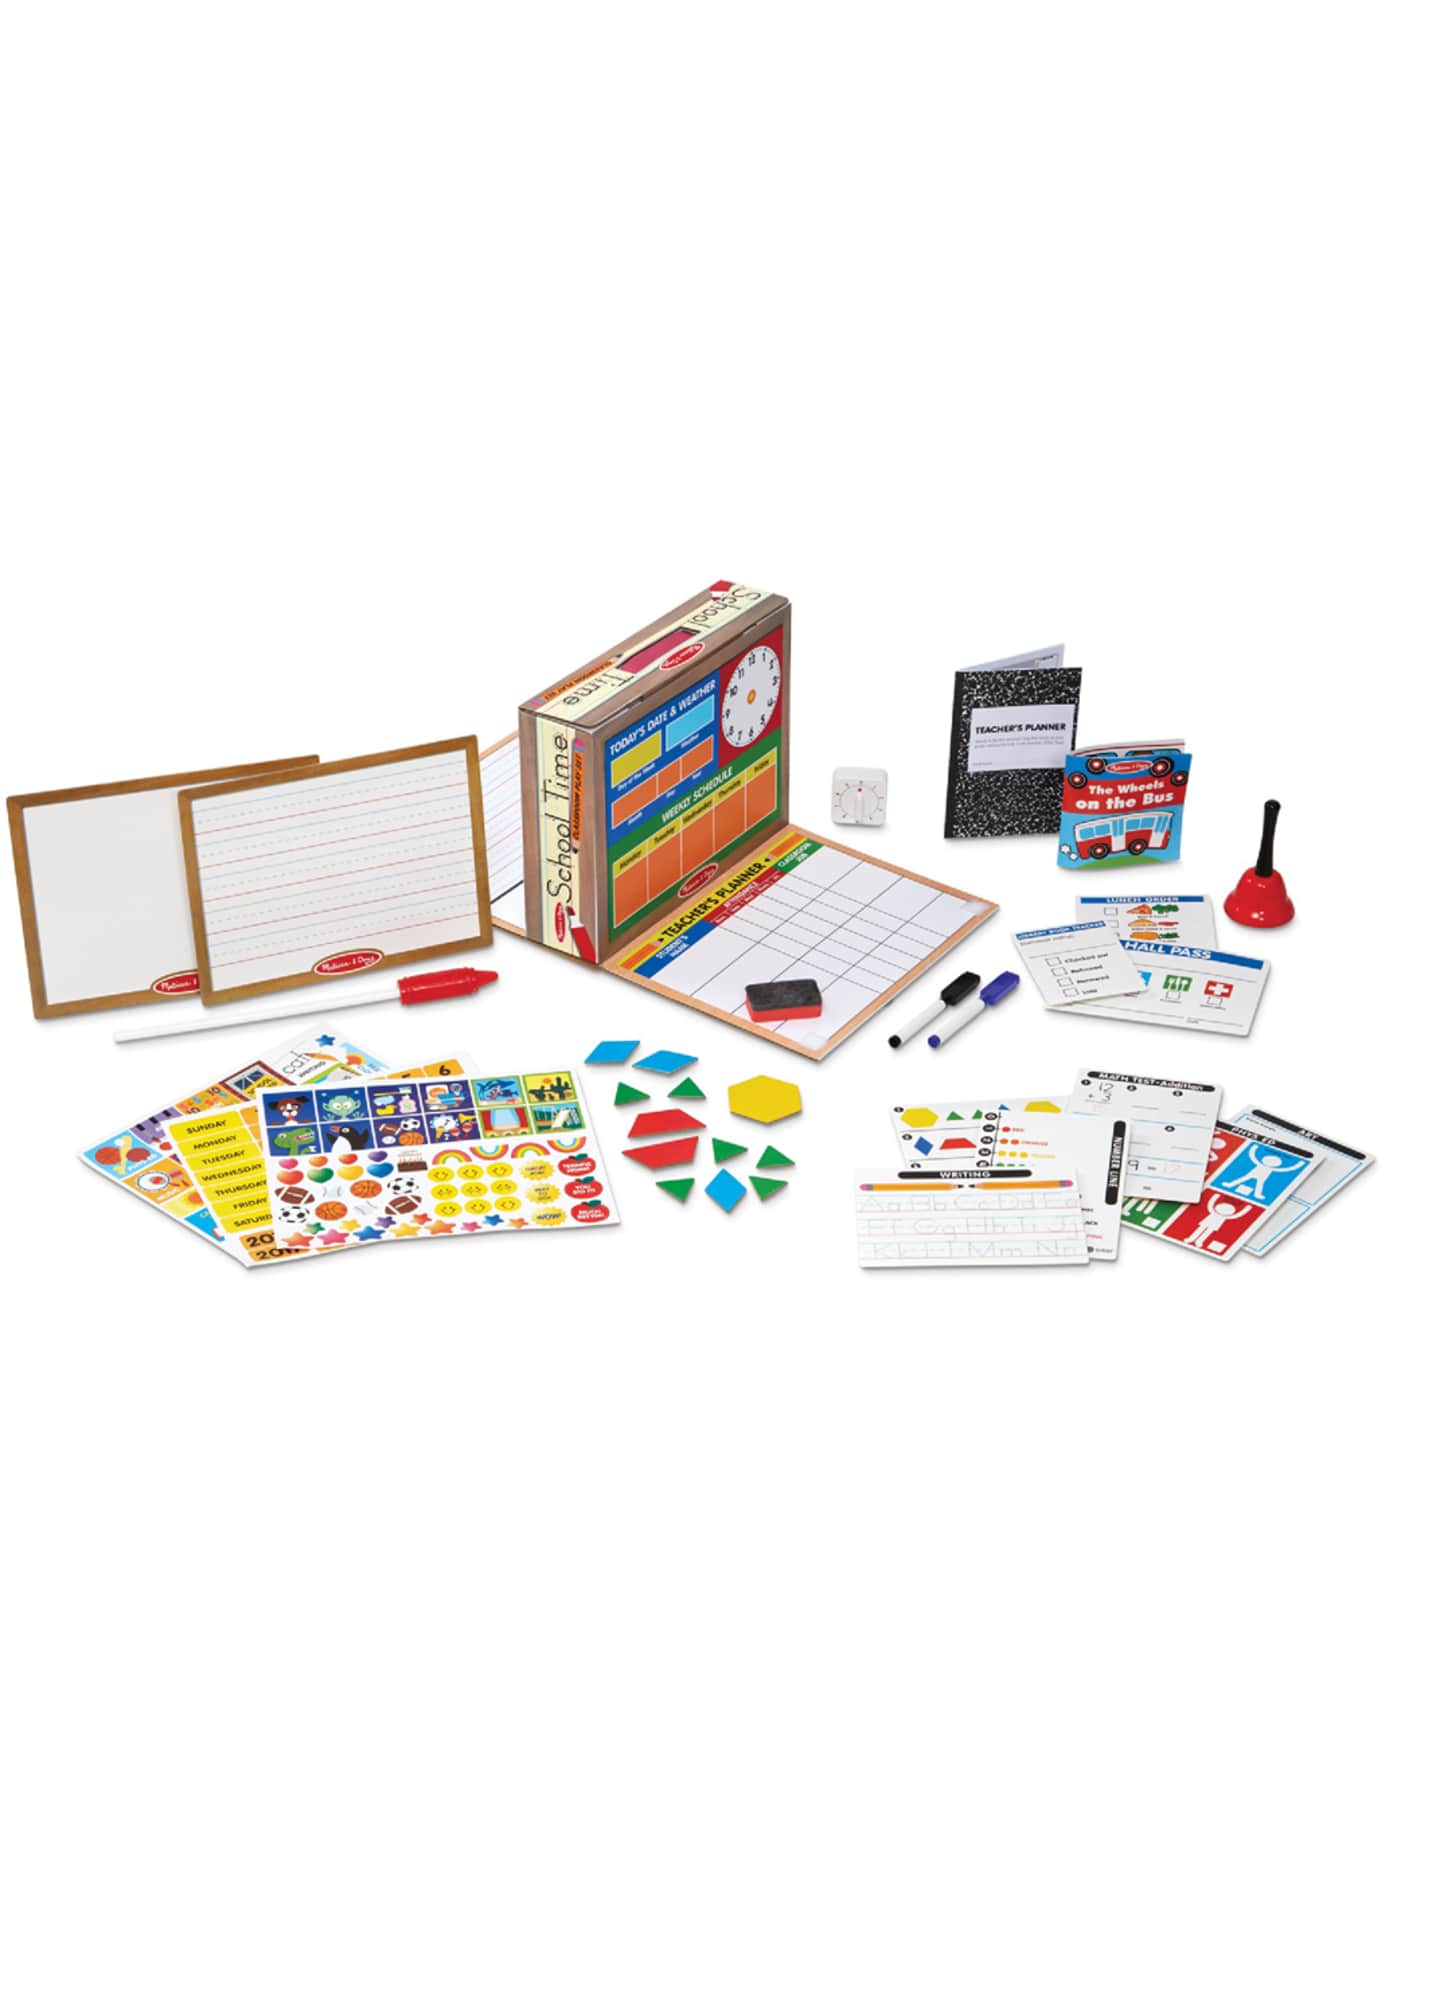 Image 1 of 2: School Time Classroom Play Set